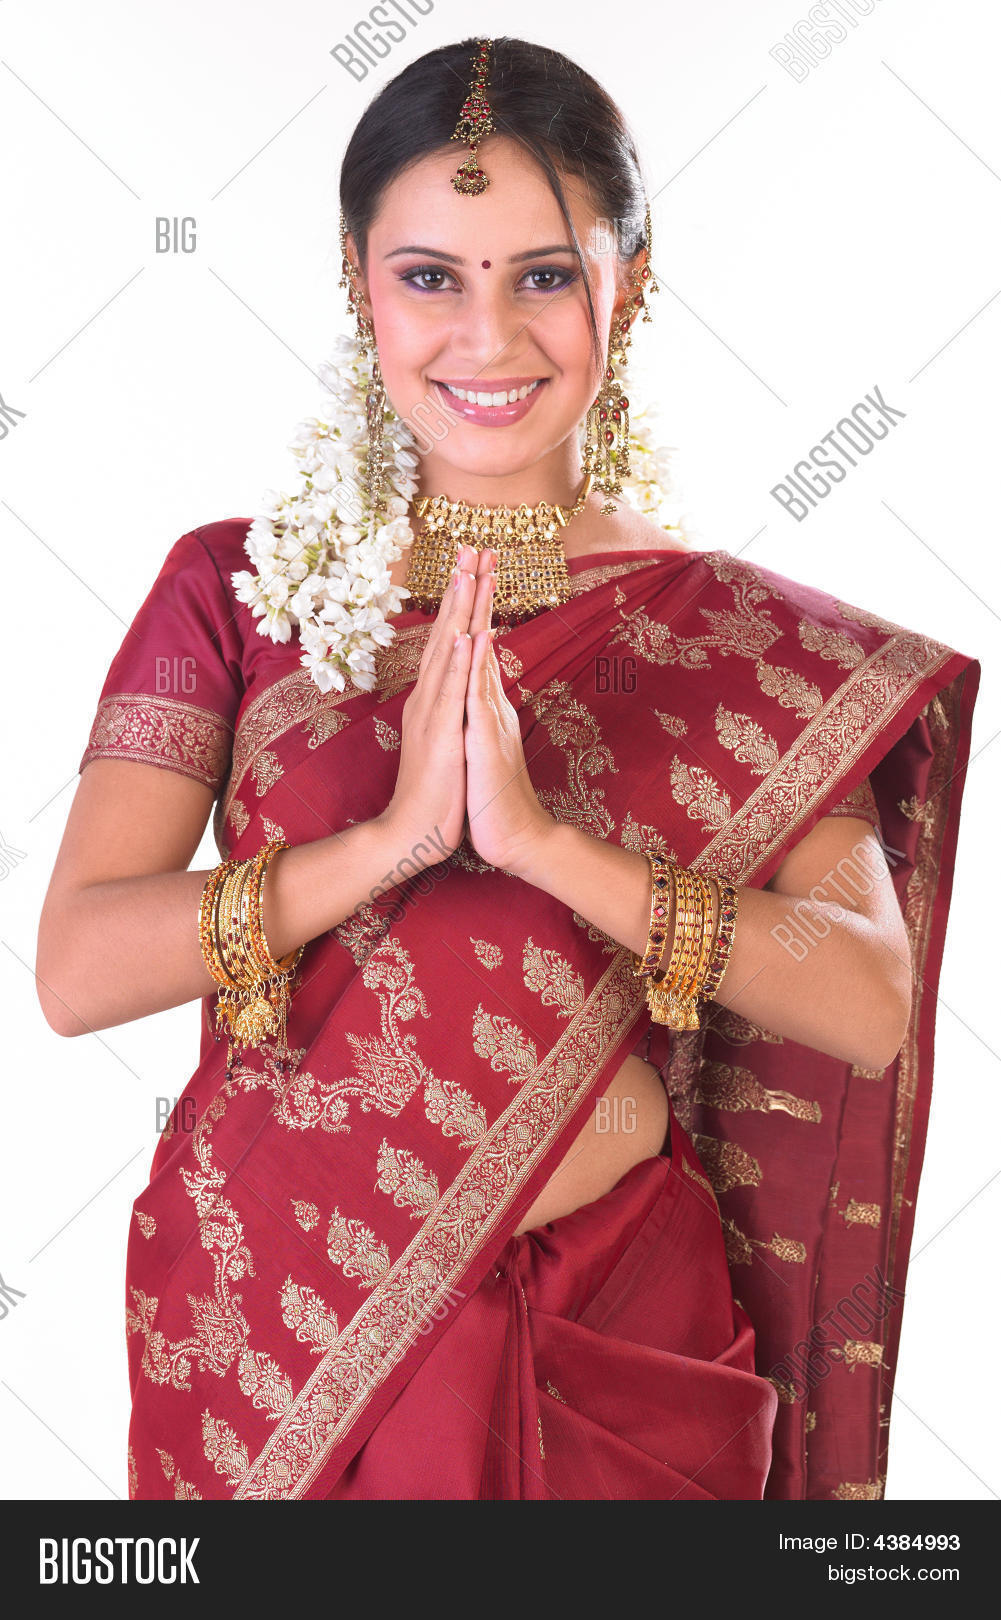 hindu single women in louisville Everyone on zoosk is single and interested in meeting new people to go out with  ty-ty 28, owensboro west hindu single women in west louisville the baby name.